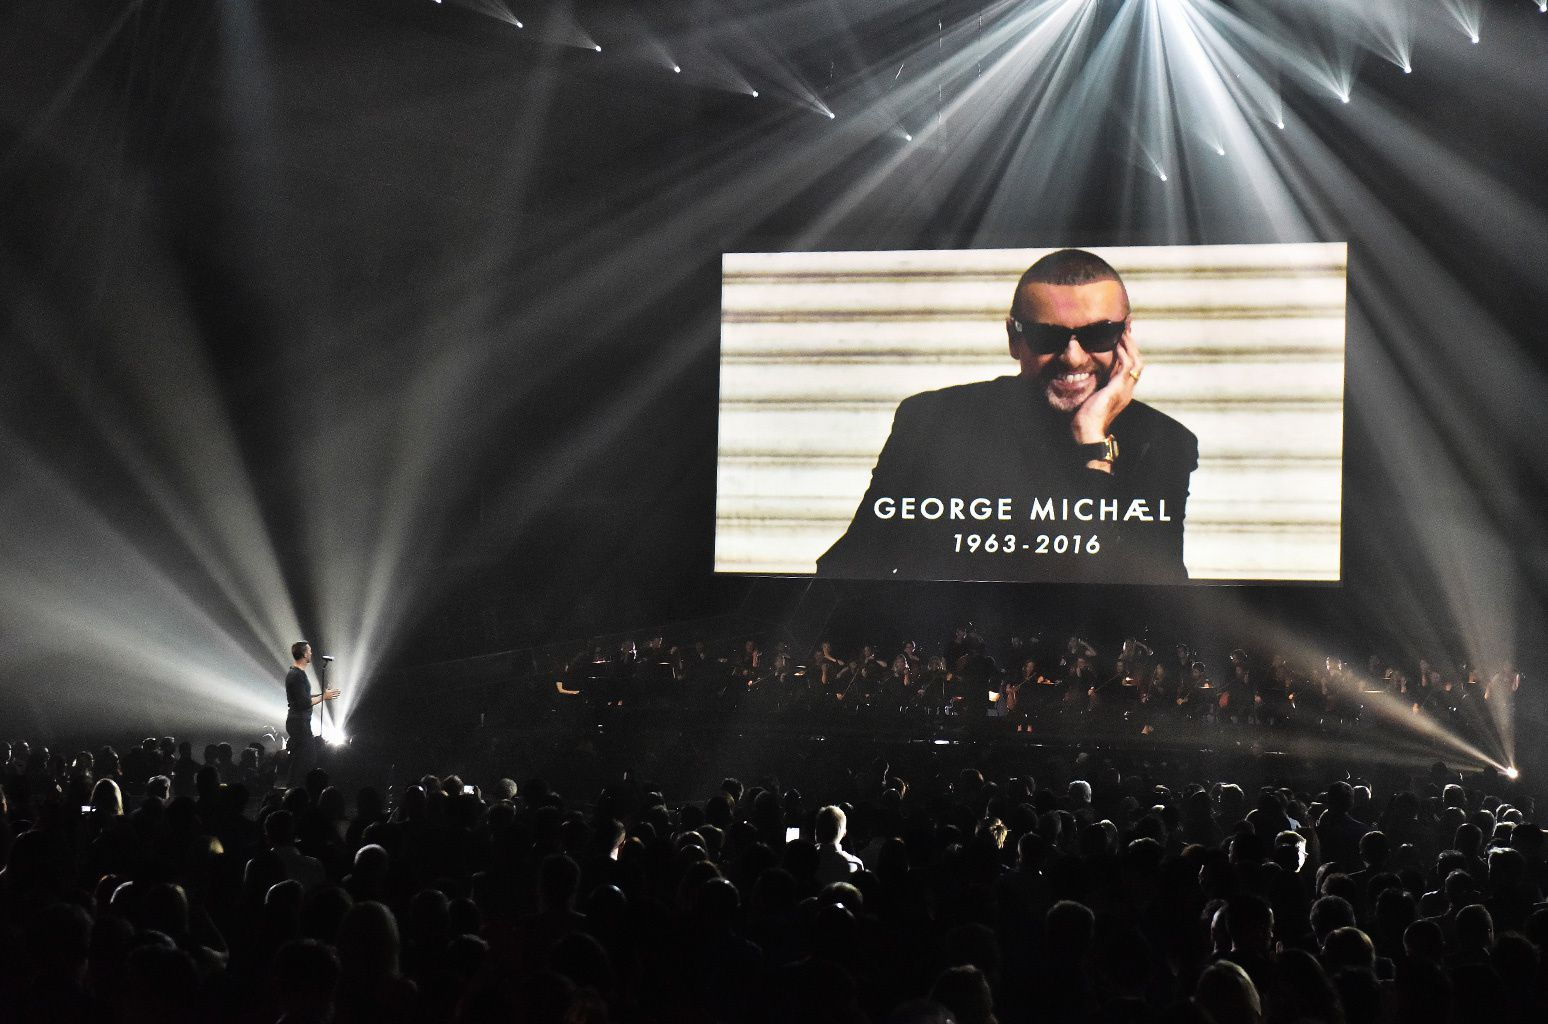 DISCOURS HOMMAGE A GEORGE MICHAEL AUX BRITS AWARDS 2017